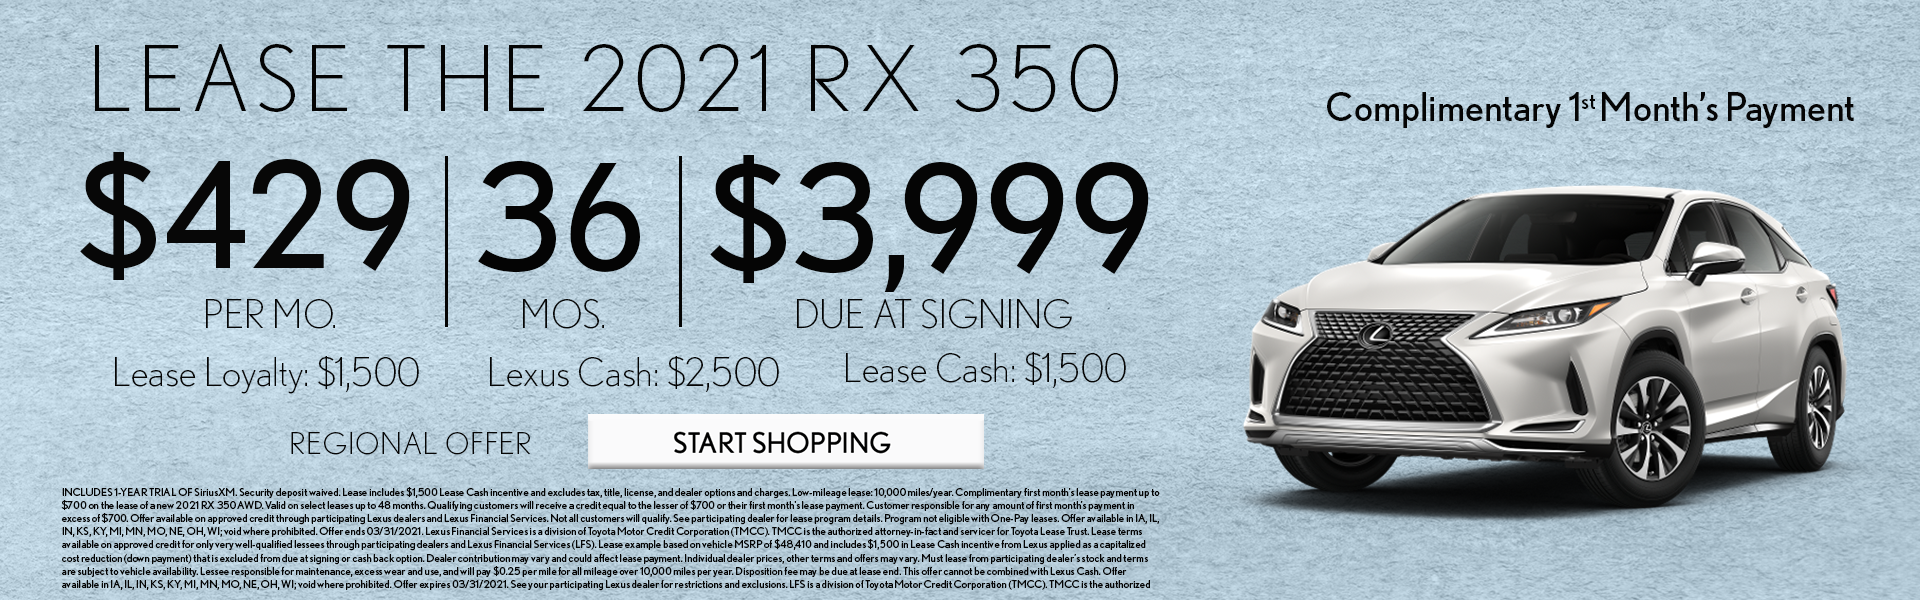 March RX Offer Banner